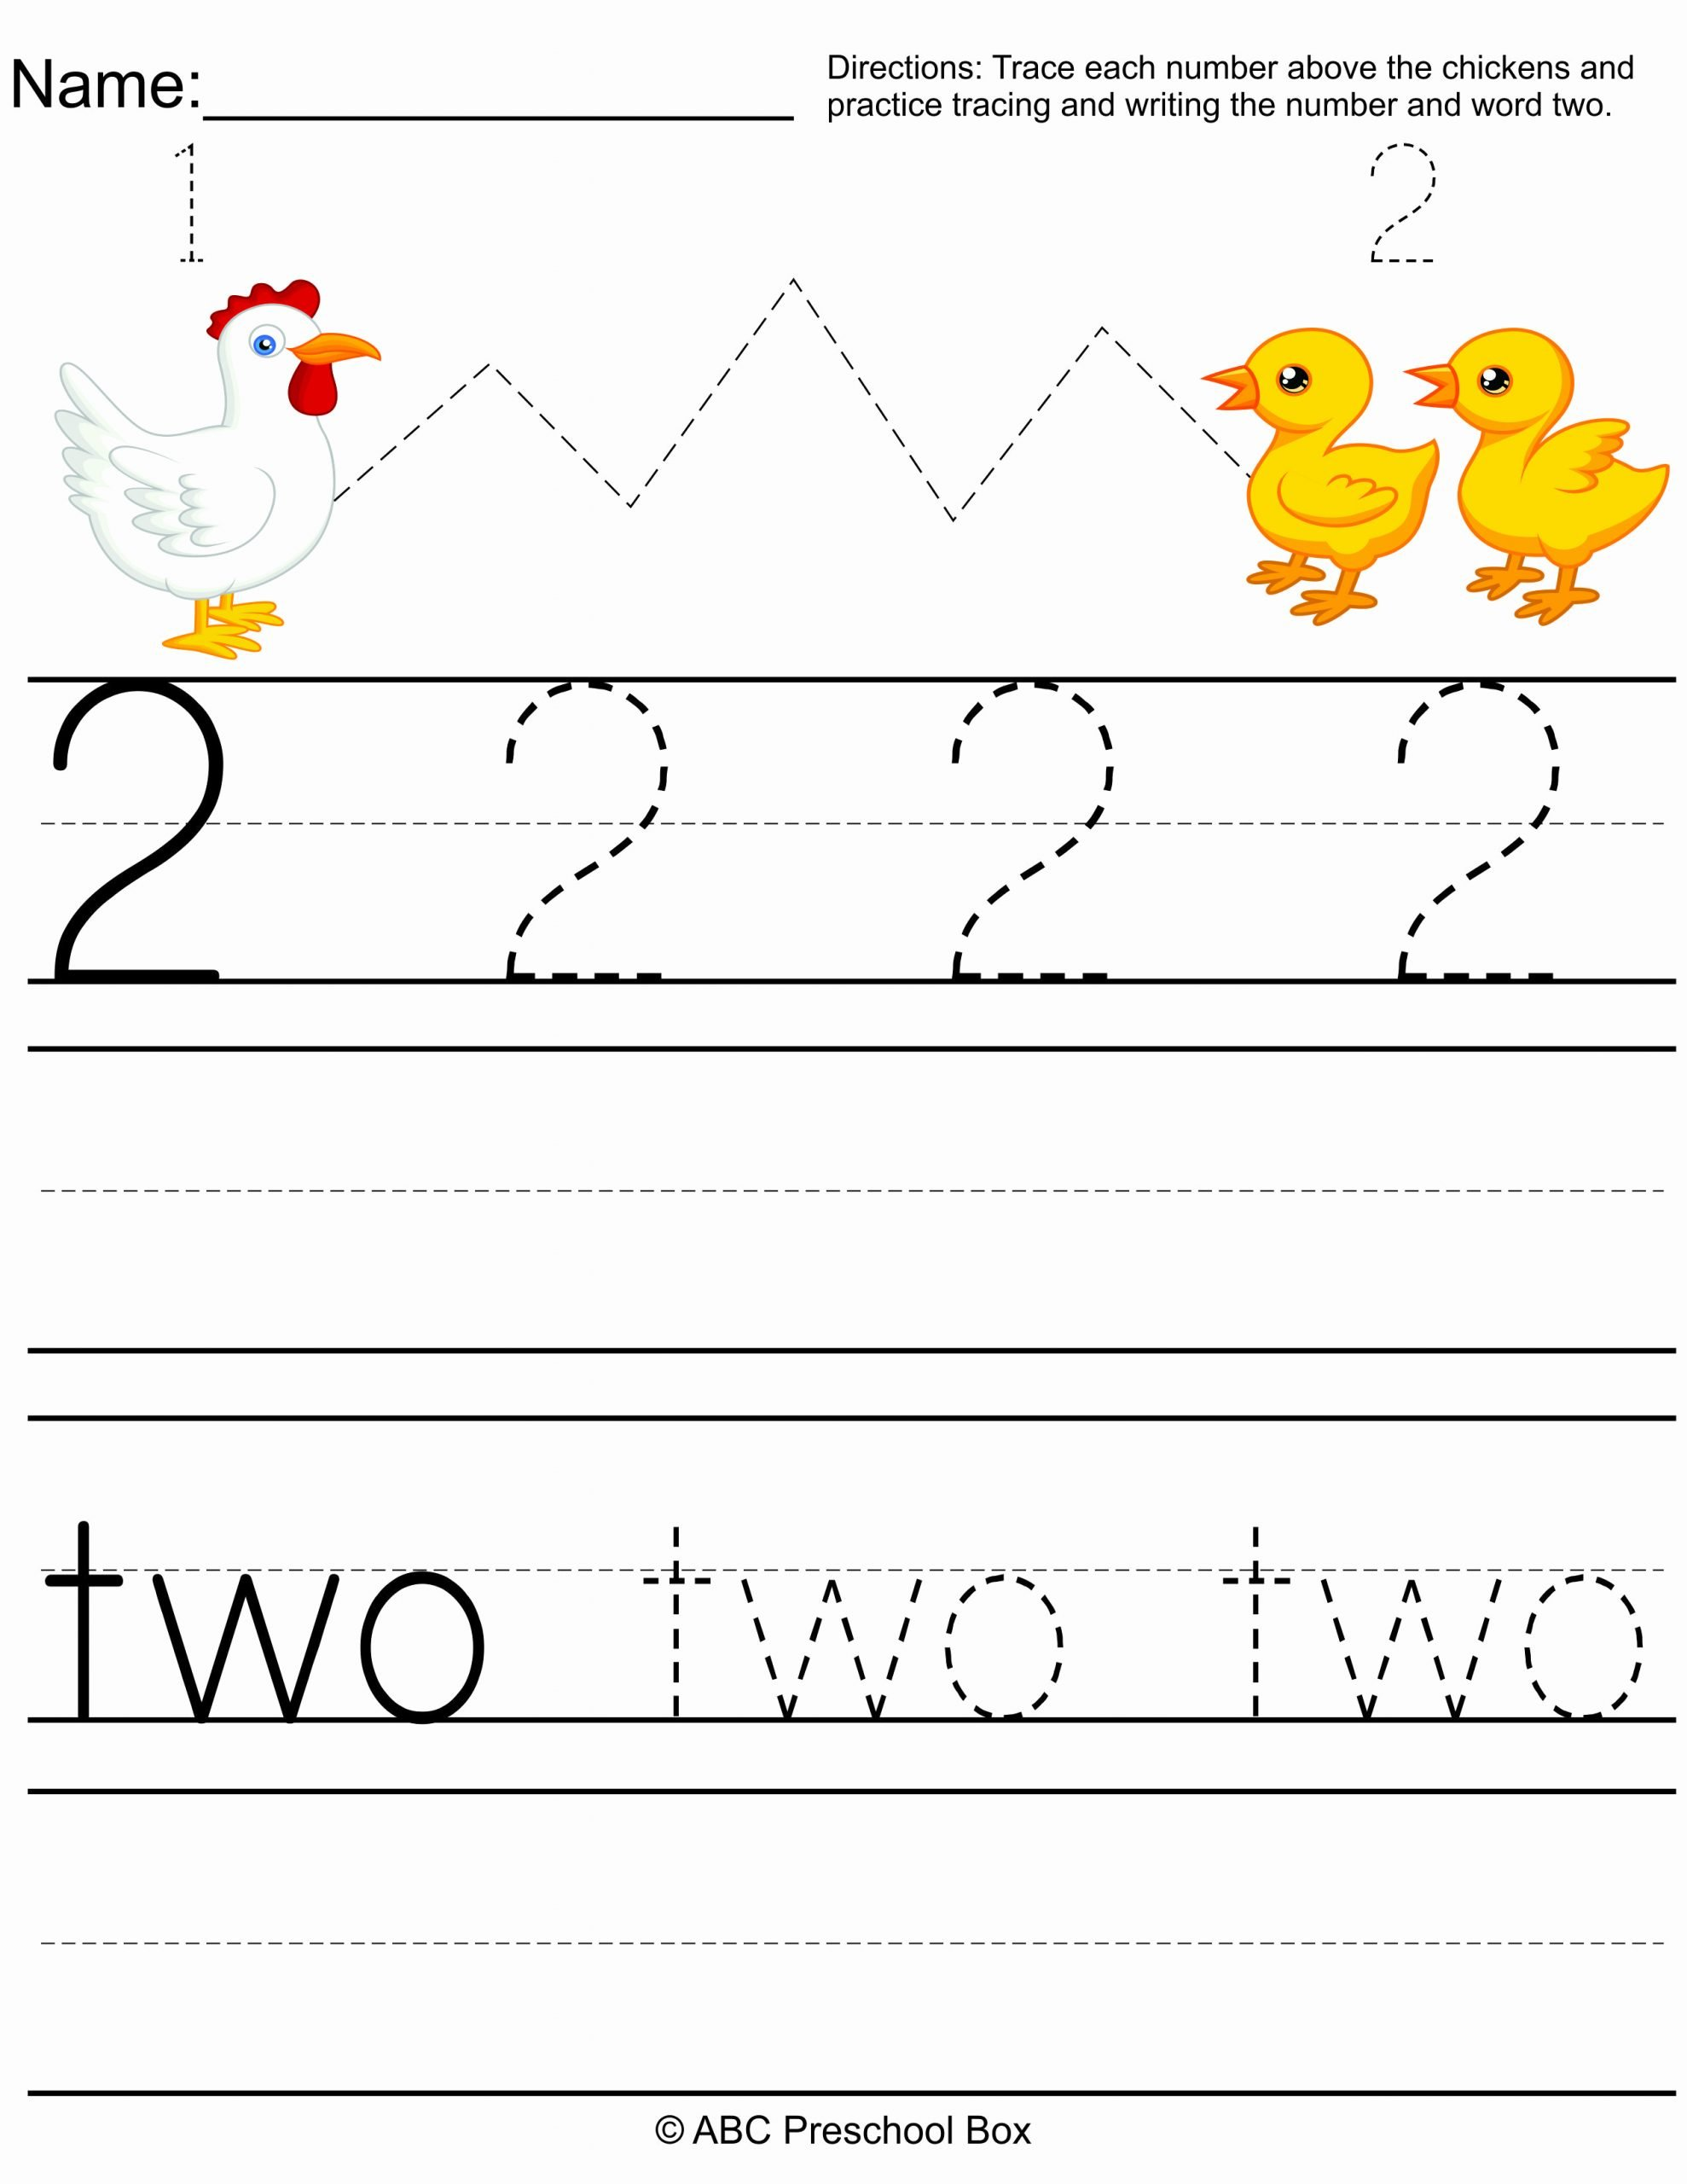 Number Two Worksheets for Preschoolers Beautiful Number 2 Preschool Worksheet From Abcpreschoolbox